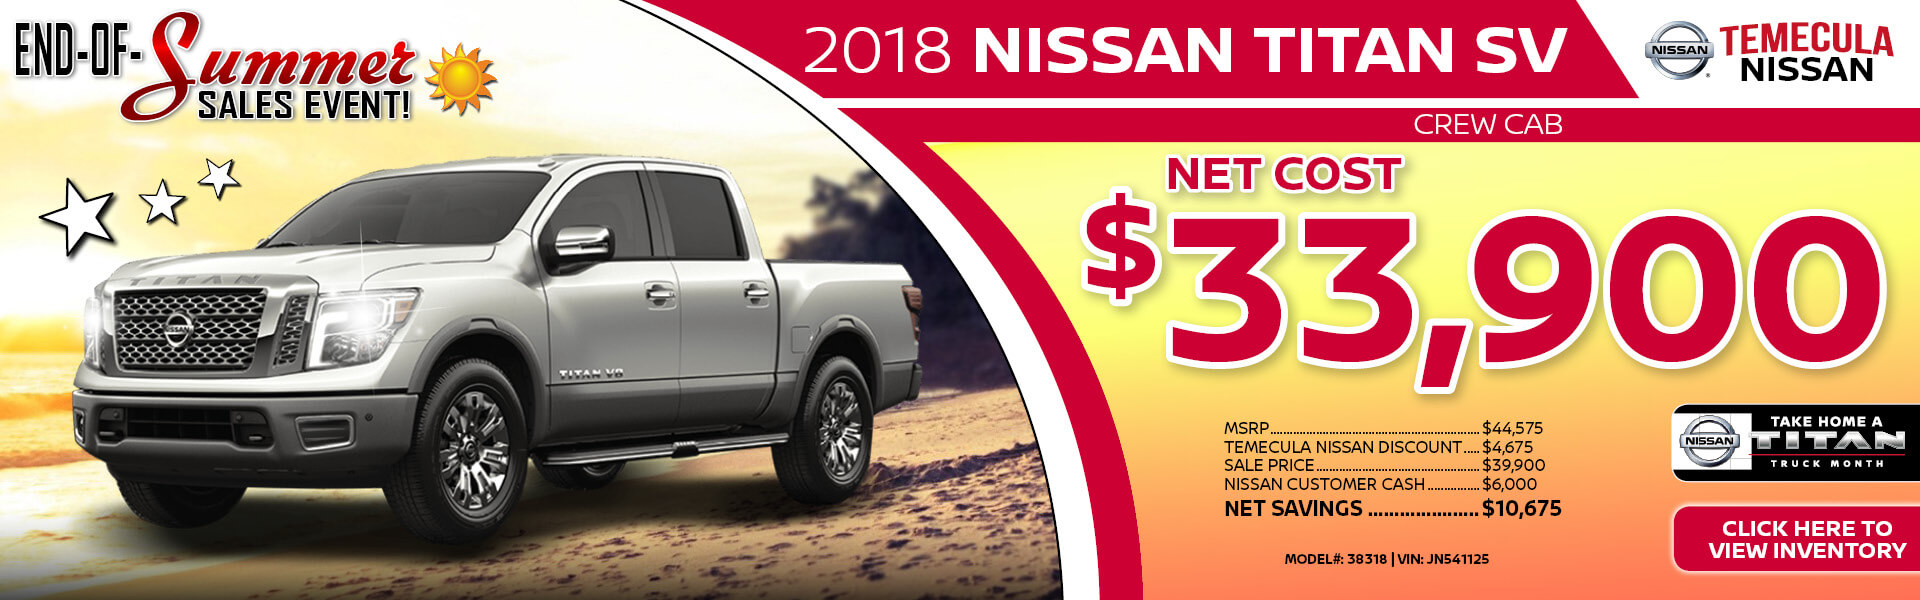 Nissan Titan $33,900 Purchase